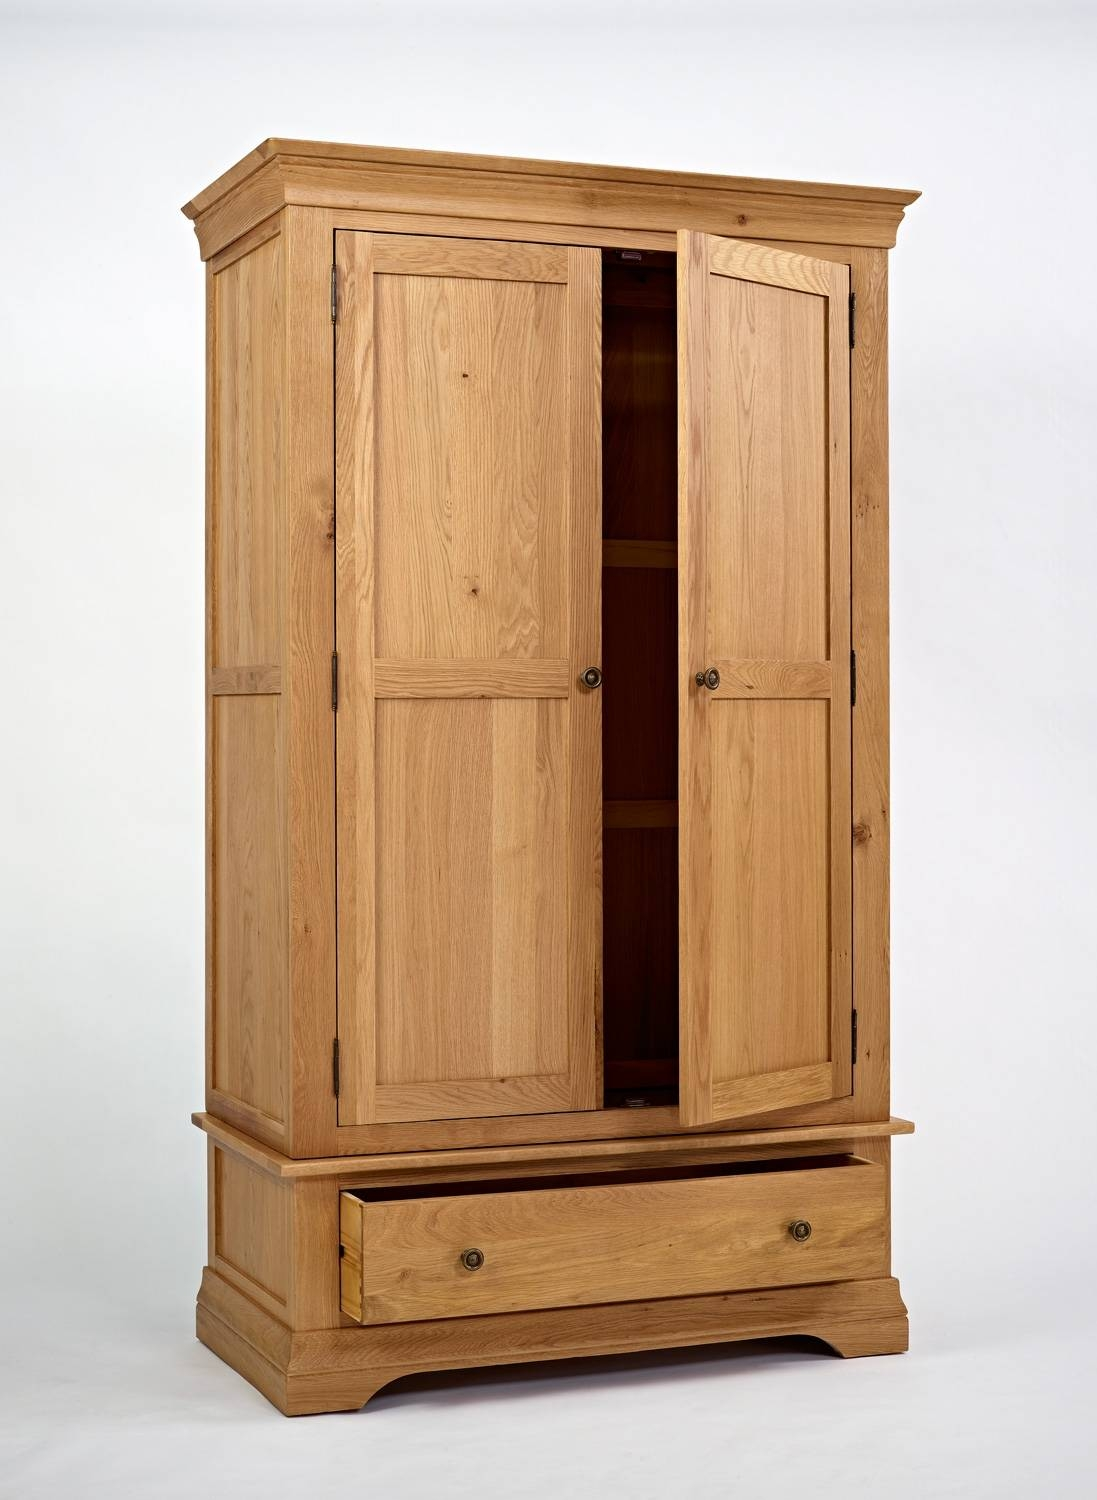 French Modern Oak Wardrobe With Drawer | Hampshire Furniture with Large Oak Wardrobes (Image 1 of 15)